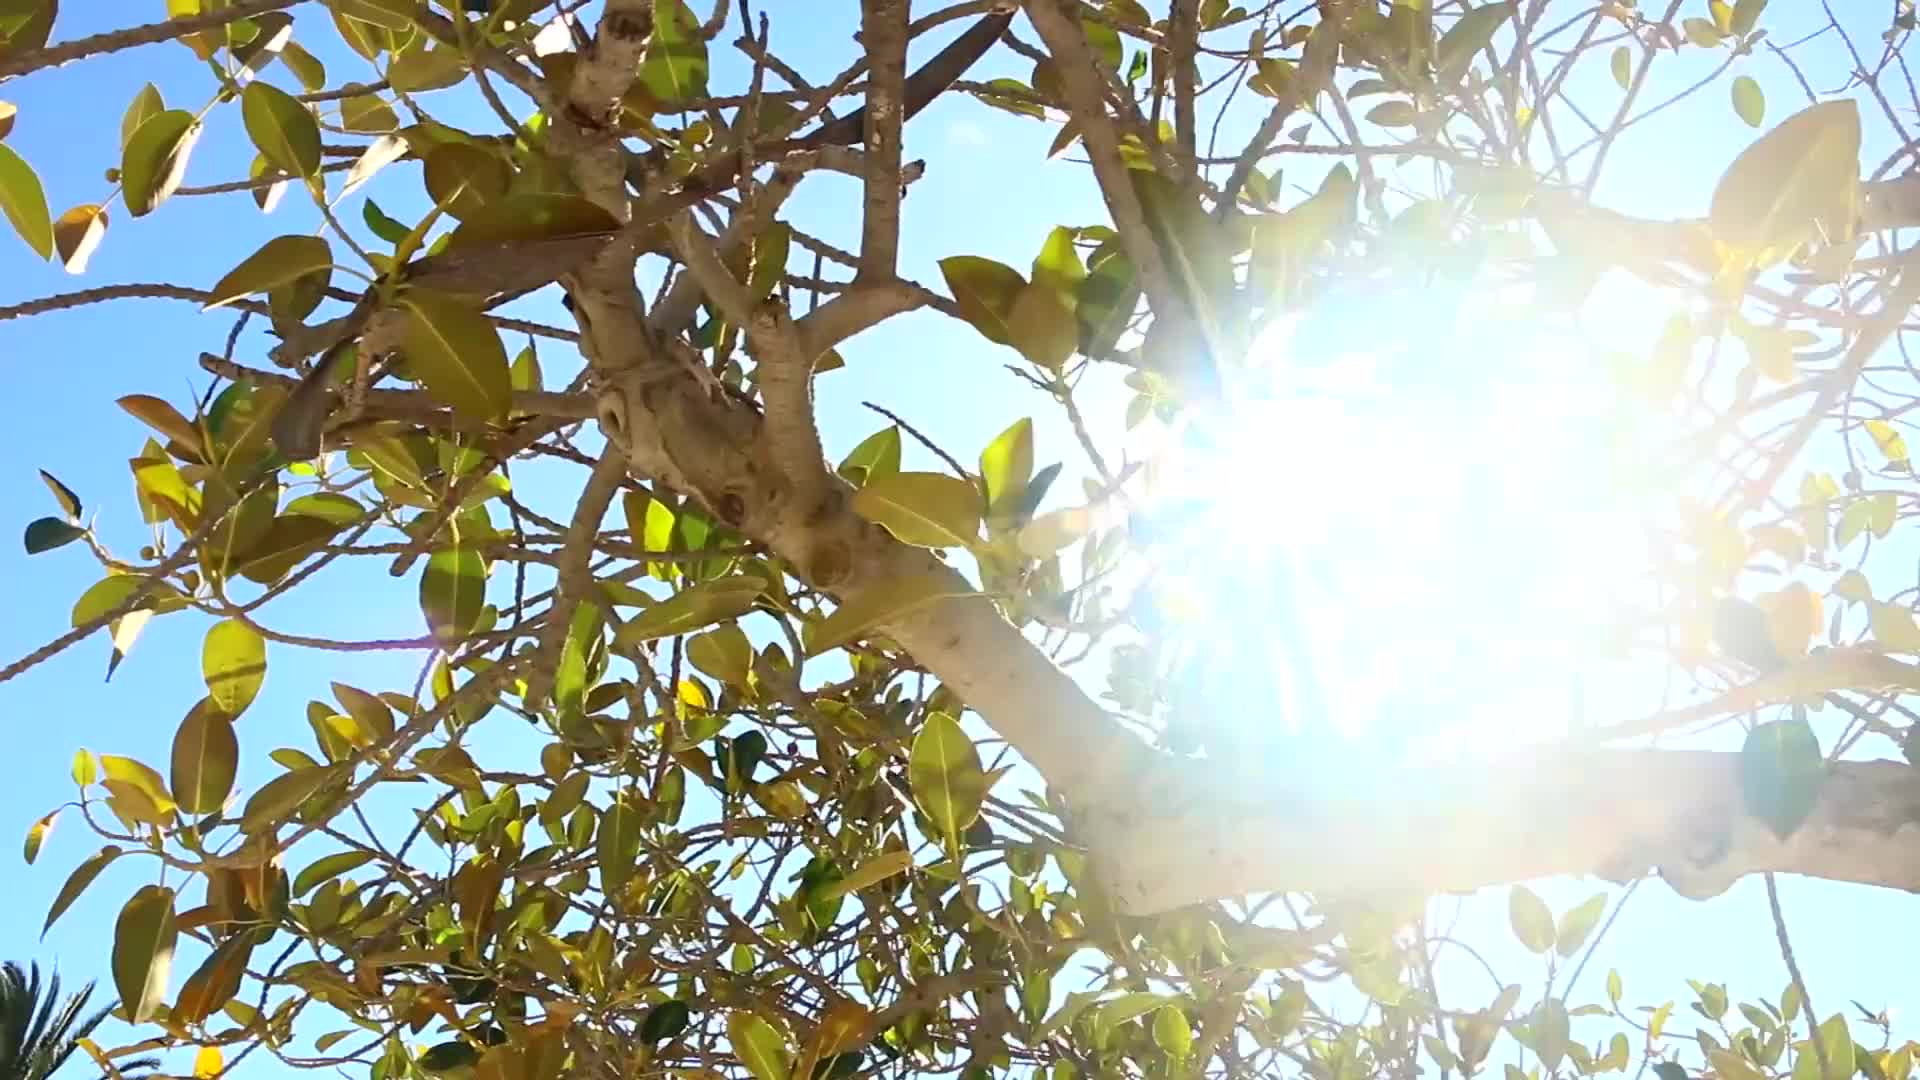 Video of tree with sun glaring